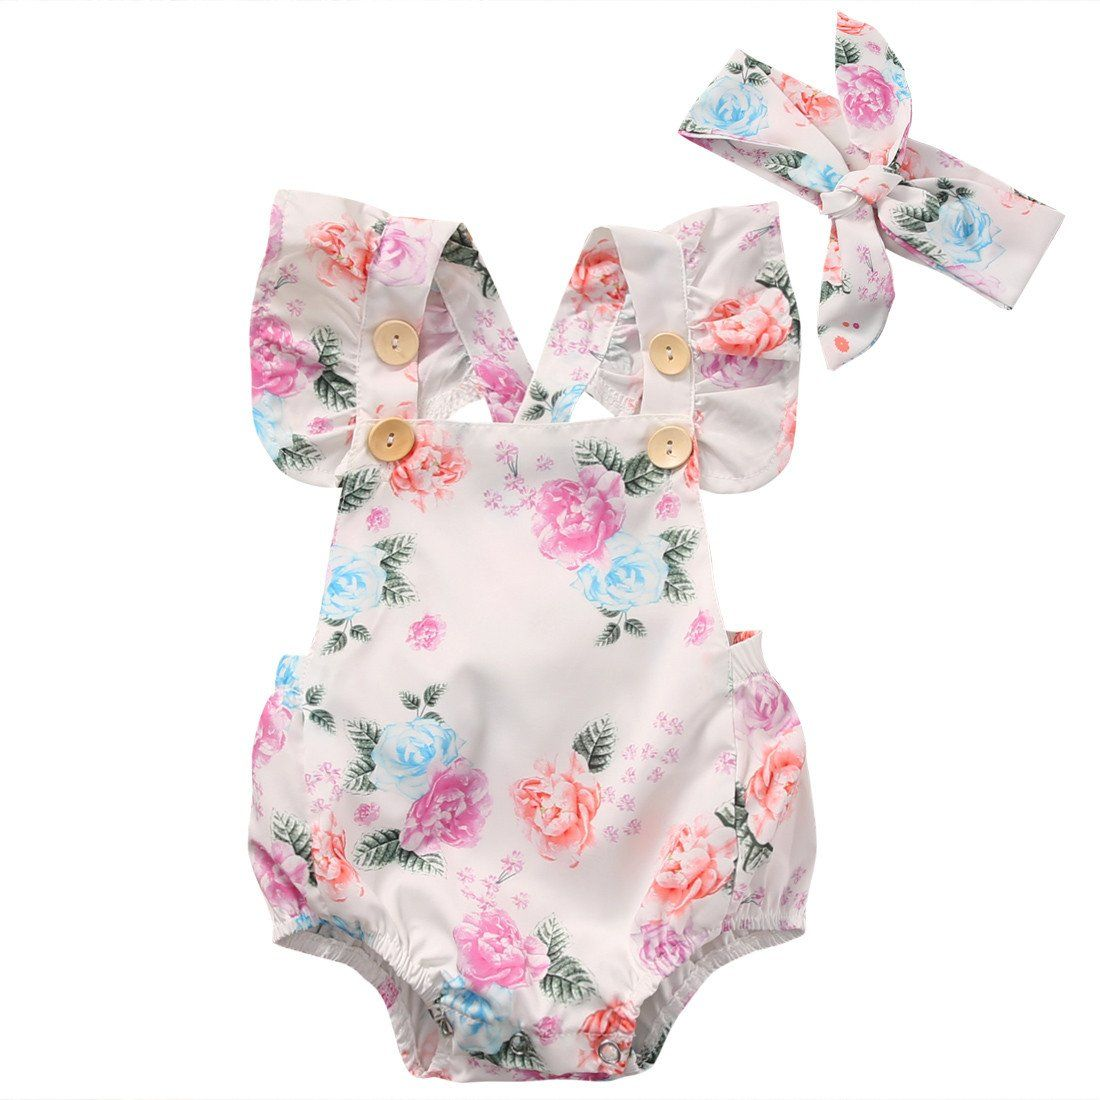 f17eef373 Material: Cotton Blend Package Includes: Bodysuit + Headband Size Chart: